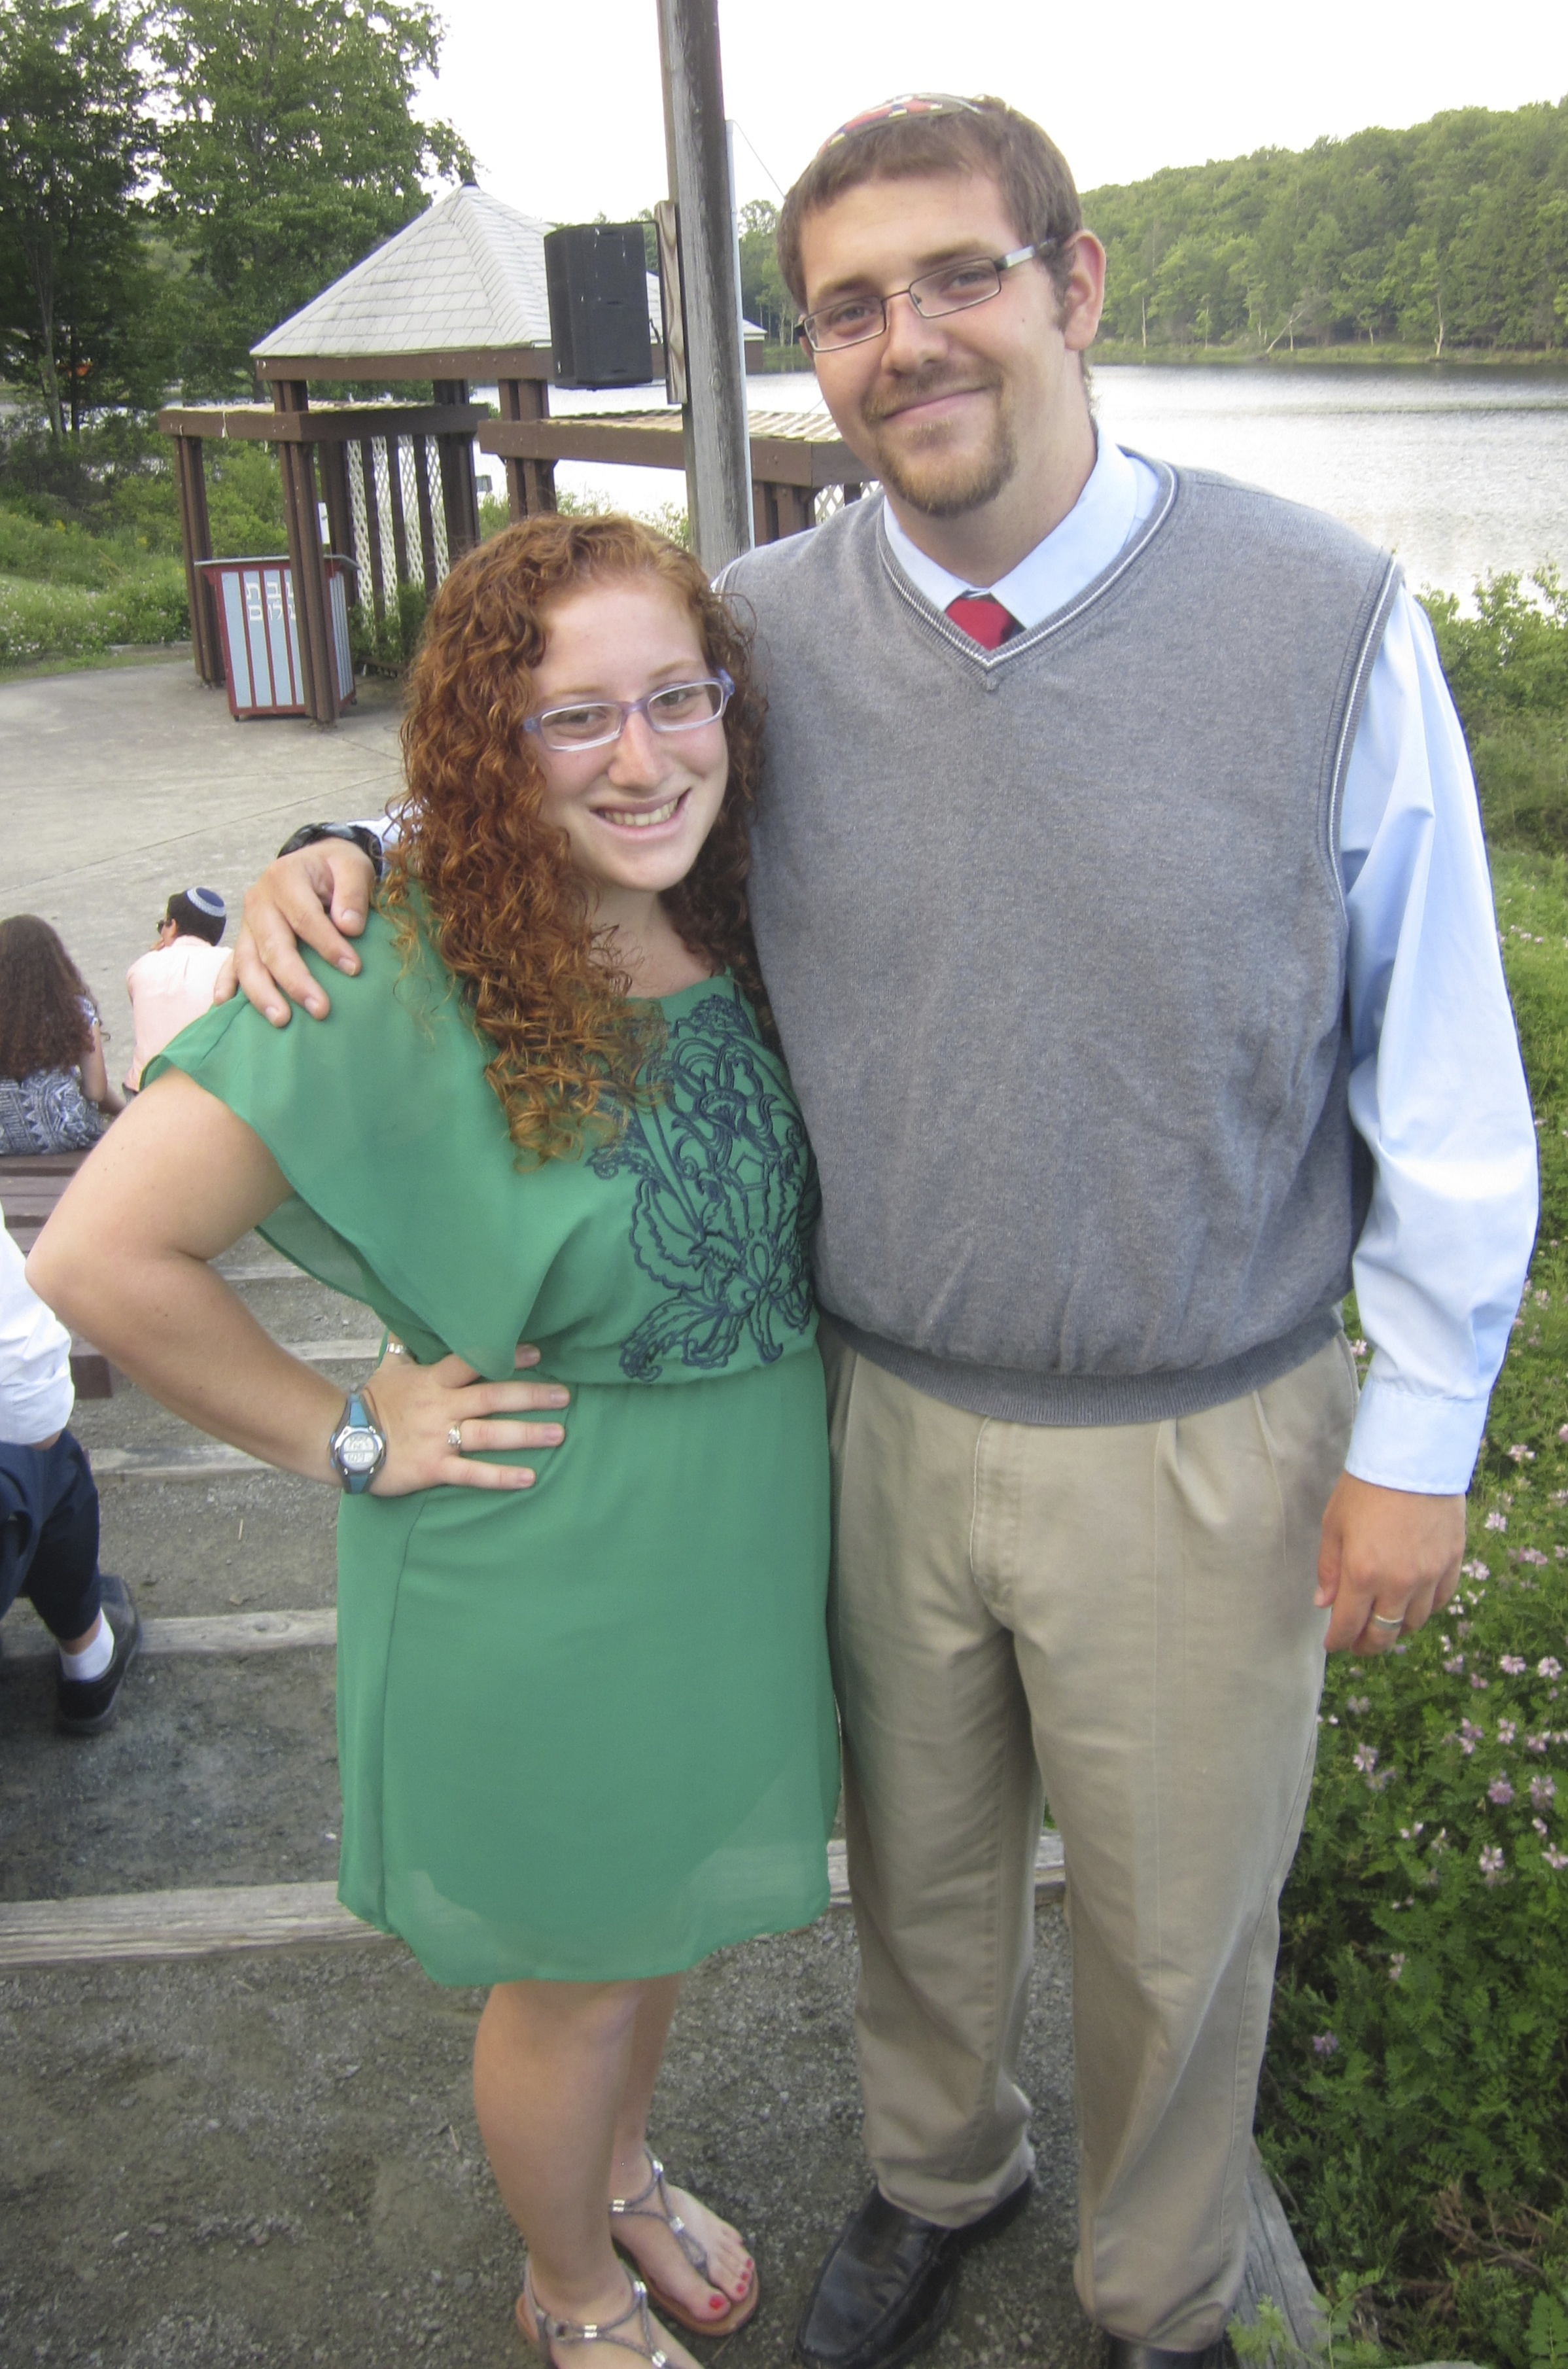 Click photo to download. Caption: Mollie Gansky and Corey Bass (pictured) met at Camp Ramah in Pennsylvania's Pocono Mountains. Credit: Courtesy Mollie Gansky.